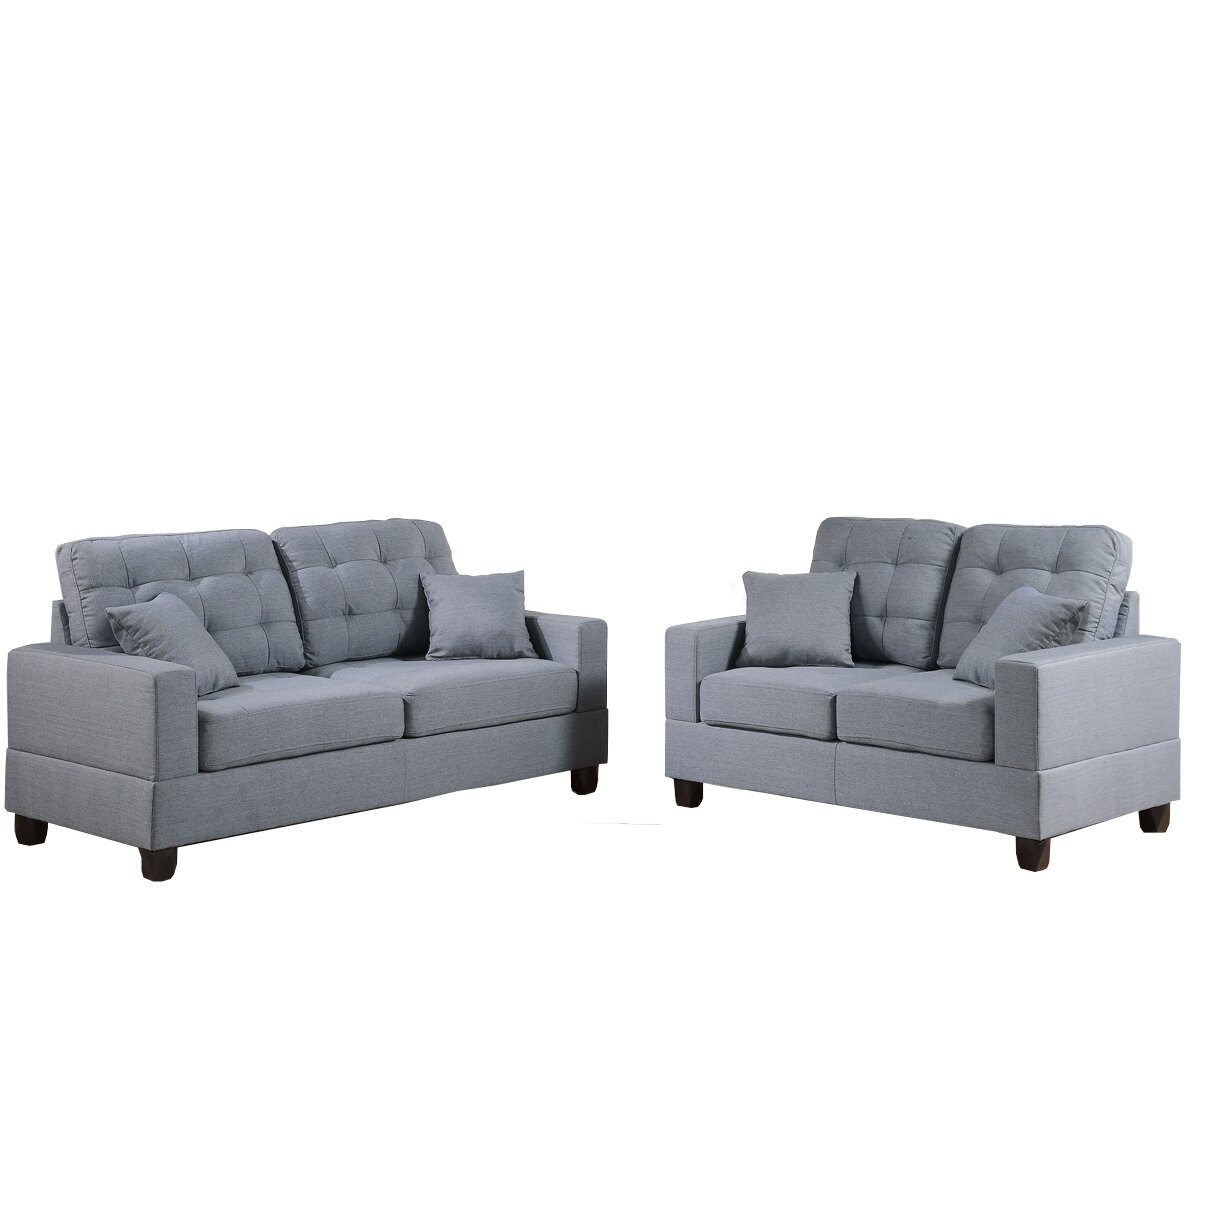 Poundex bobkona aria sofa and loveseat set reviews wayfair for Couch und sofa